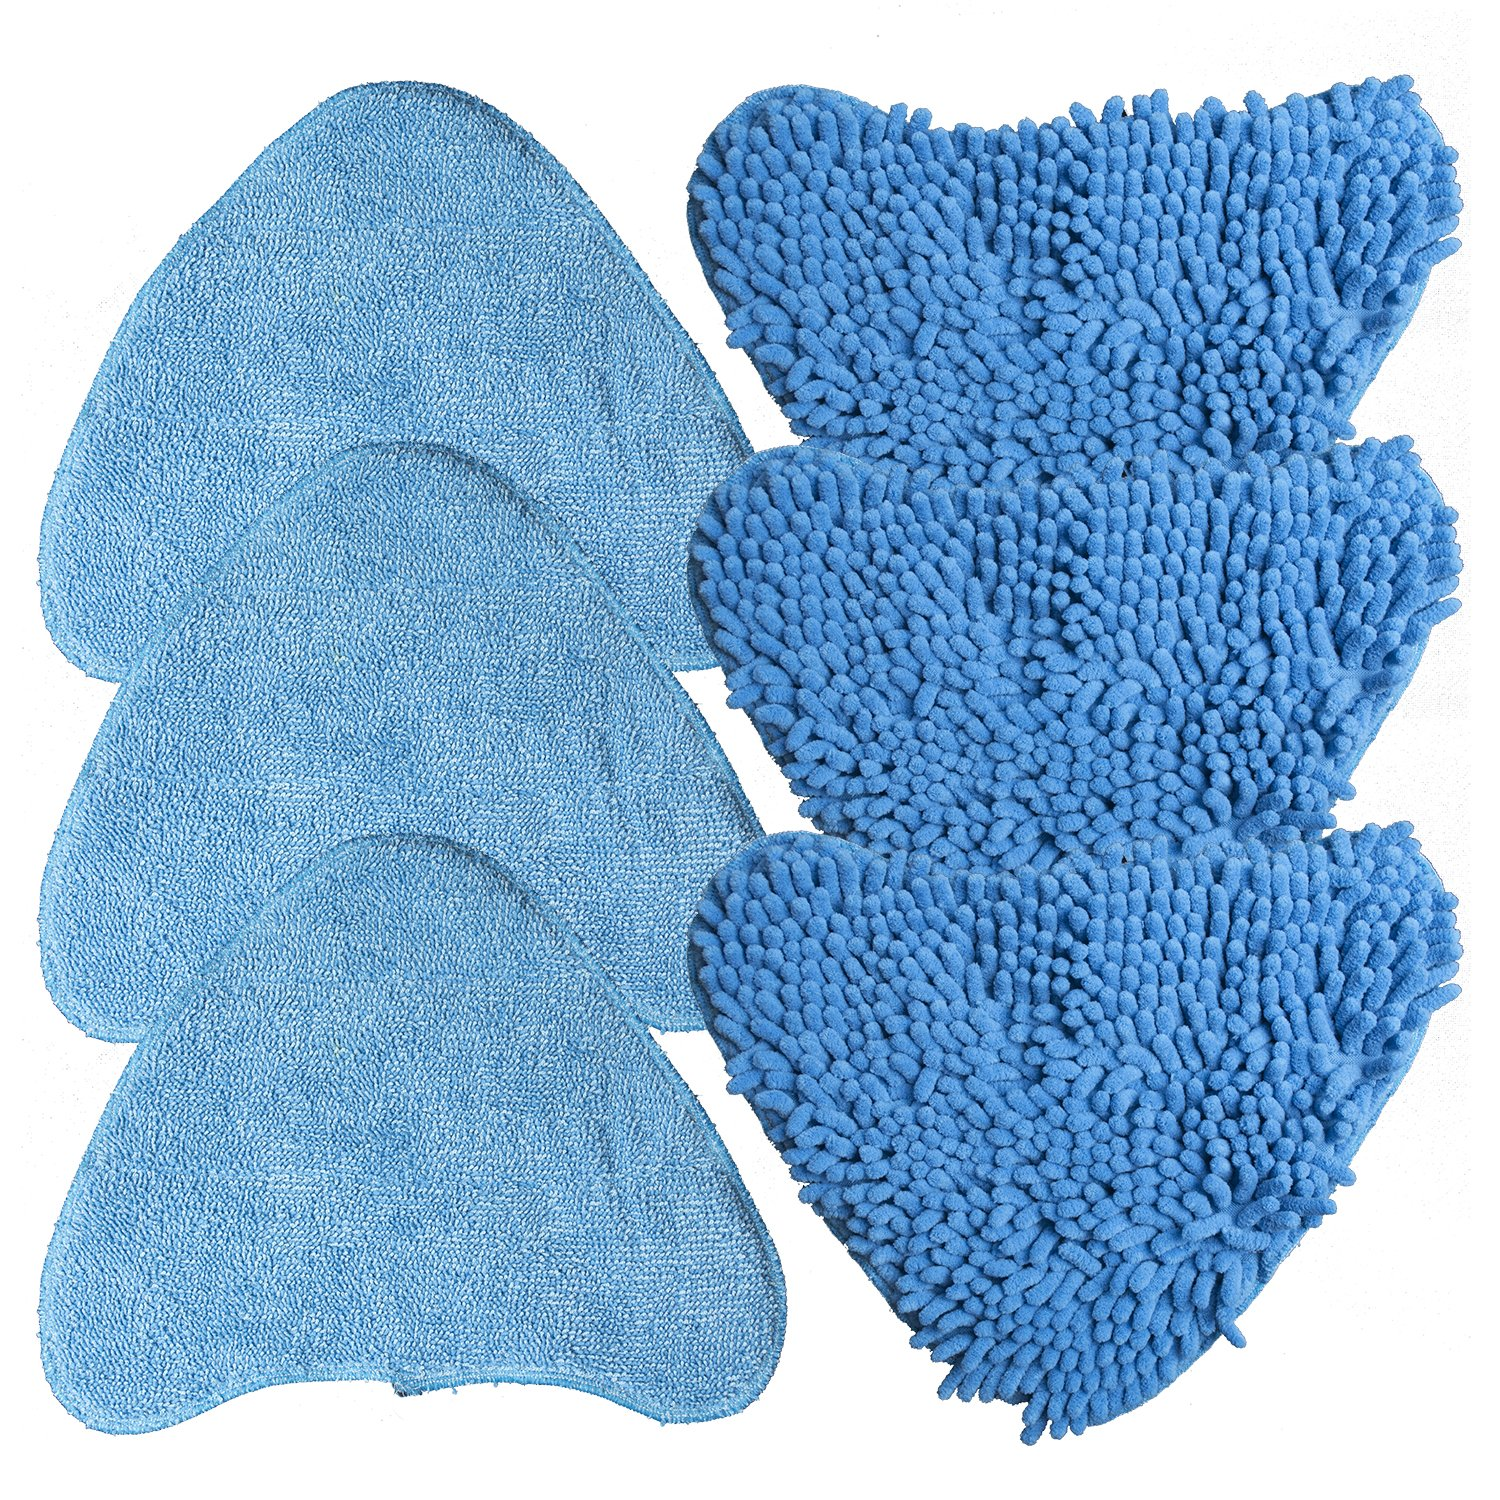 Washable Long Lasting Velcro Fixing Pack of 6 Steam Mop Replacement Pads (3 x Microfibre Pads, 3 x Coral Microfibre Pads) compatible with VAX s7 TaylorHe